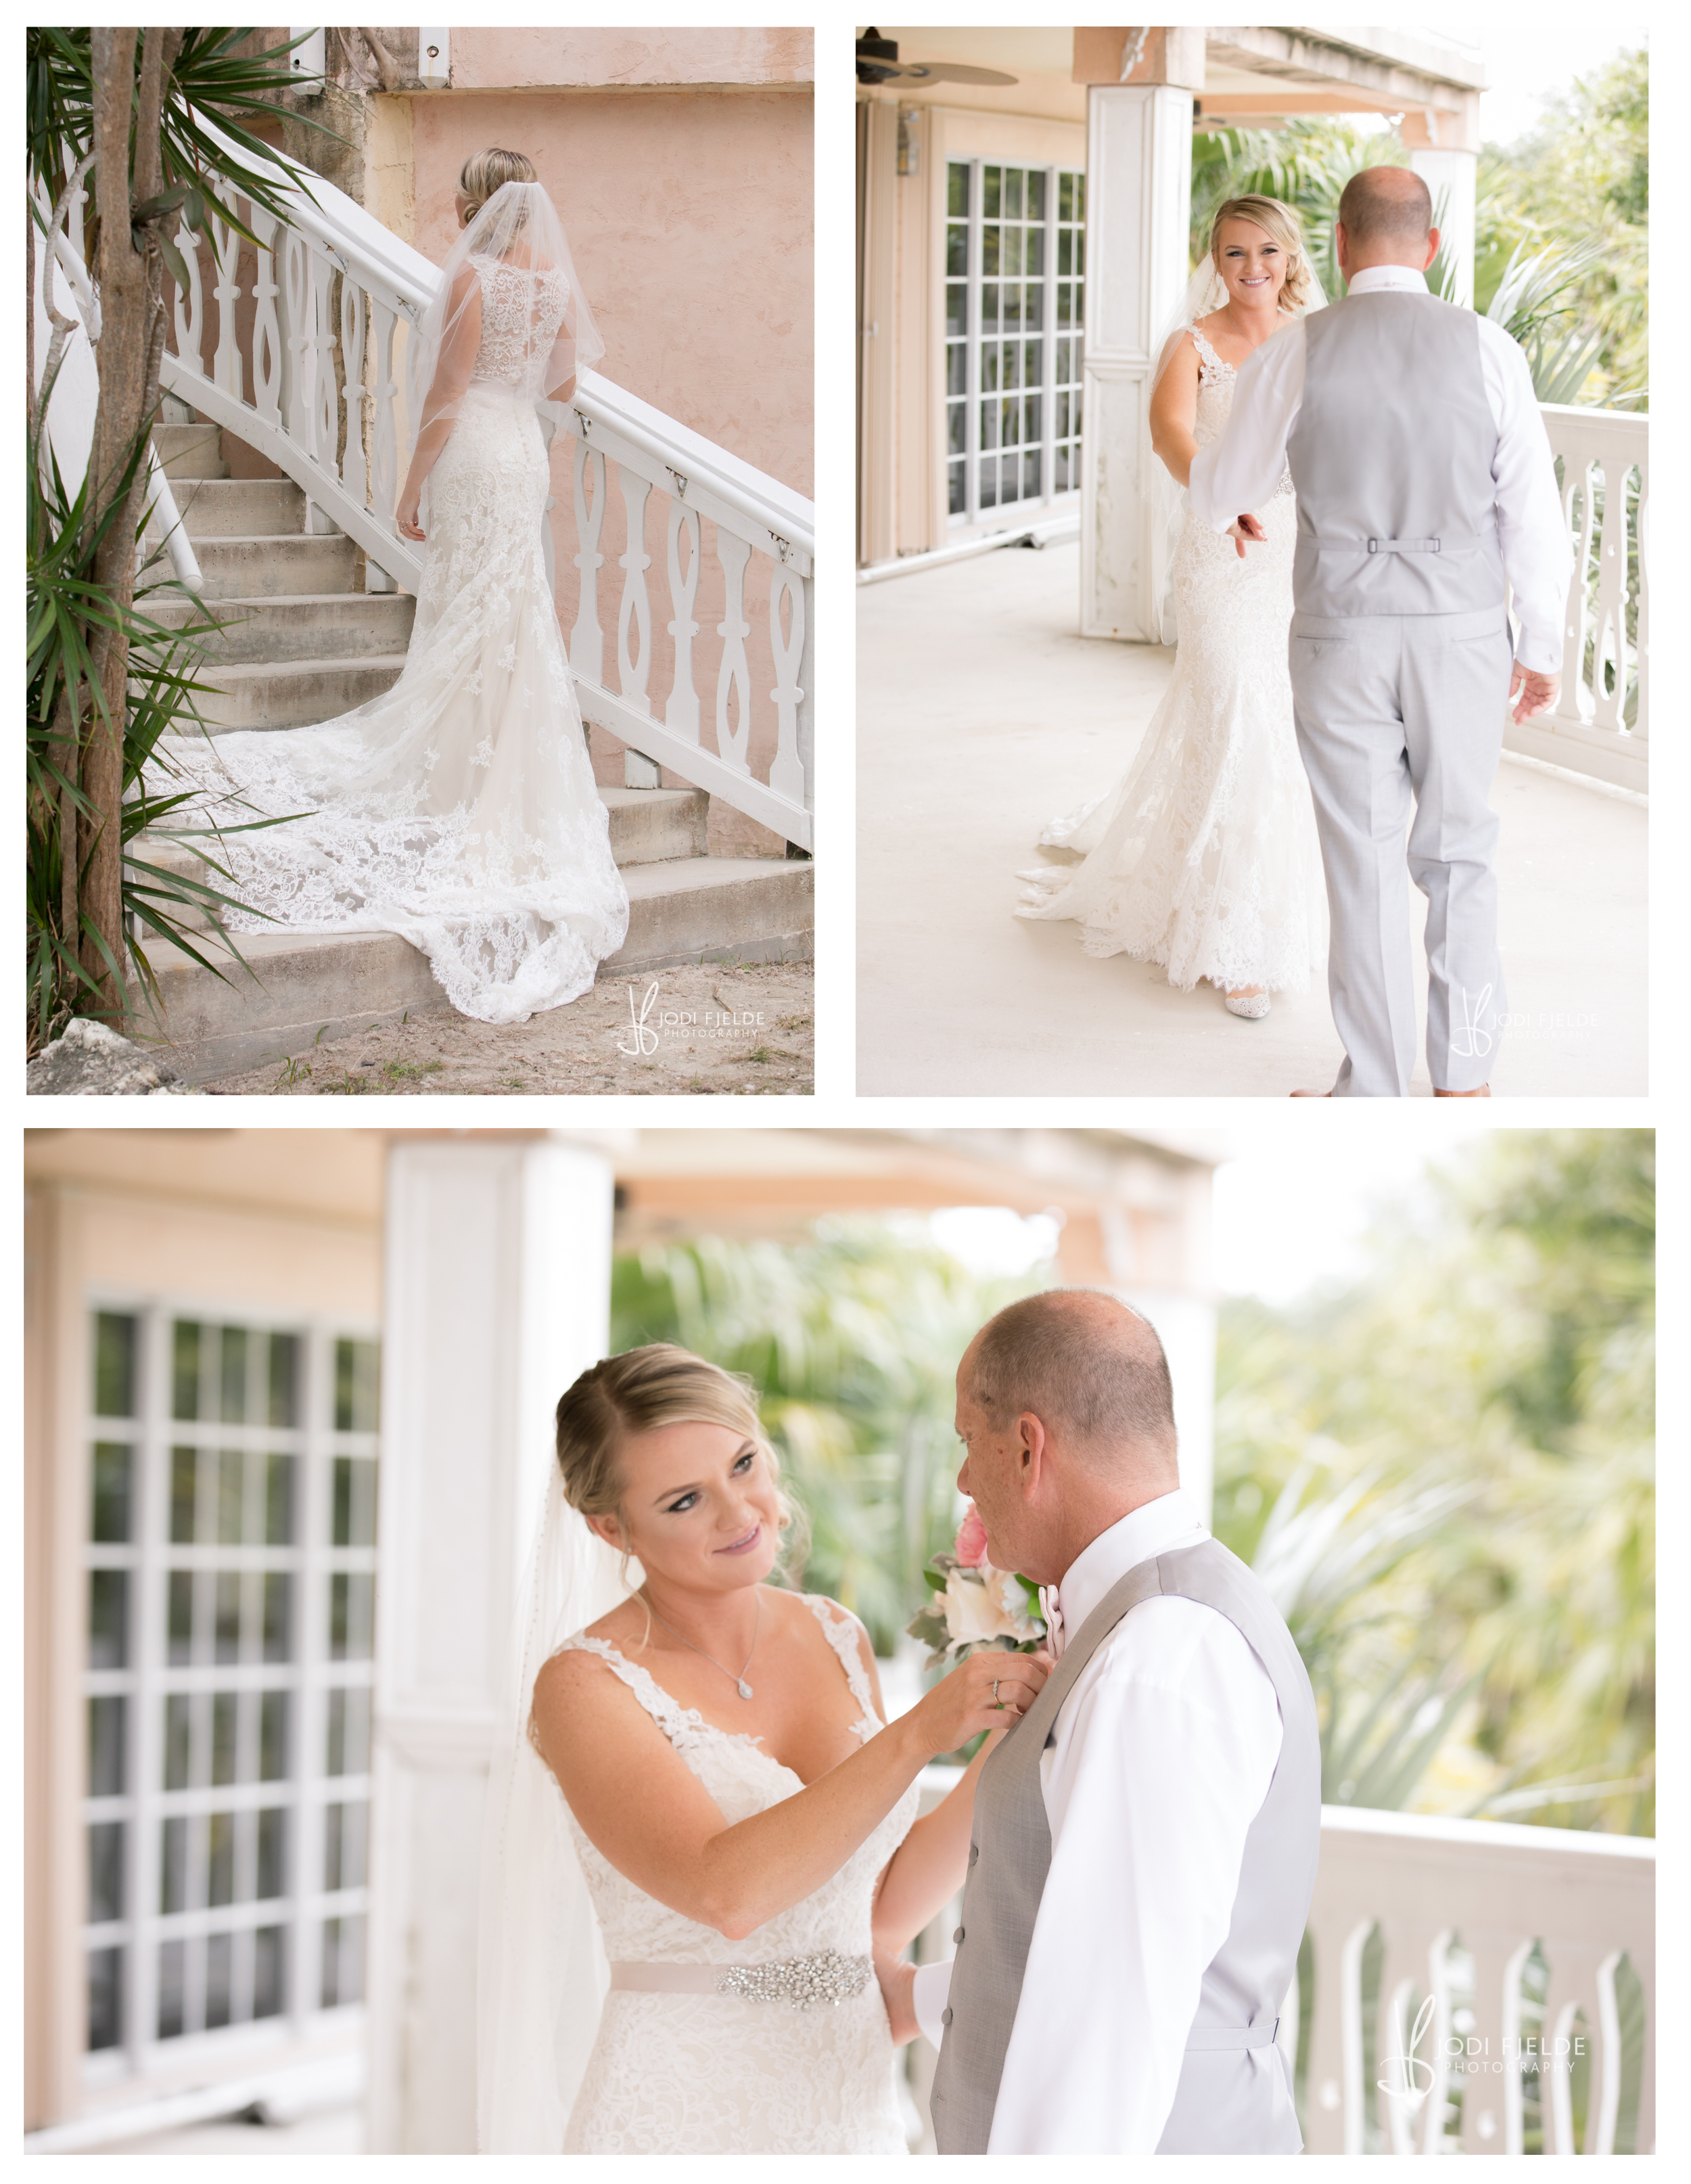 Cocconut_Cove_&_ Marina_ wedding_Kalie_and_Kurt 19.jpg